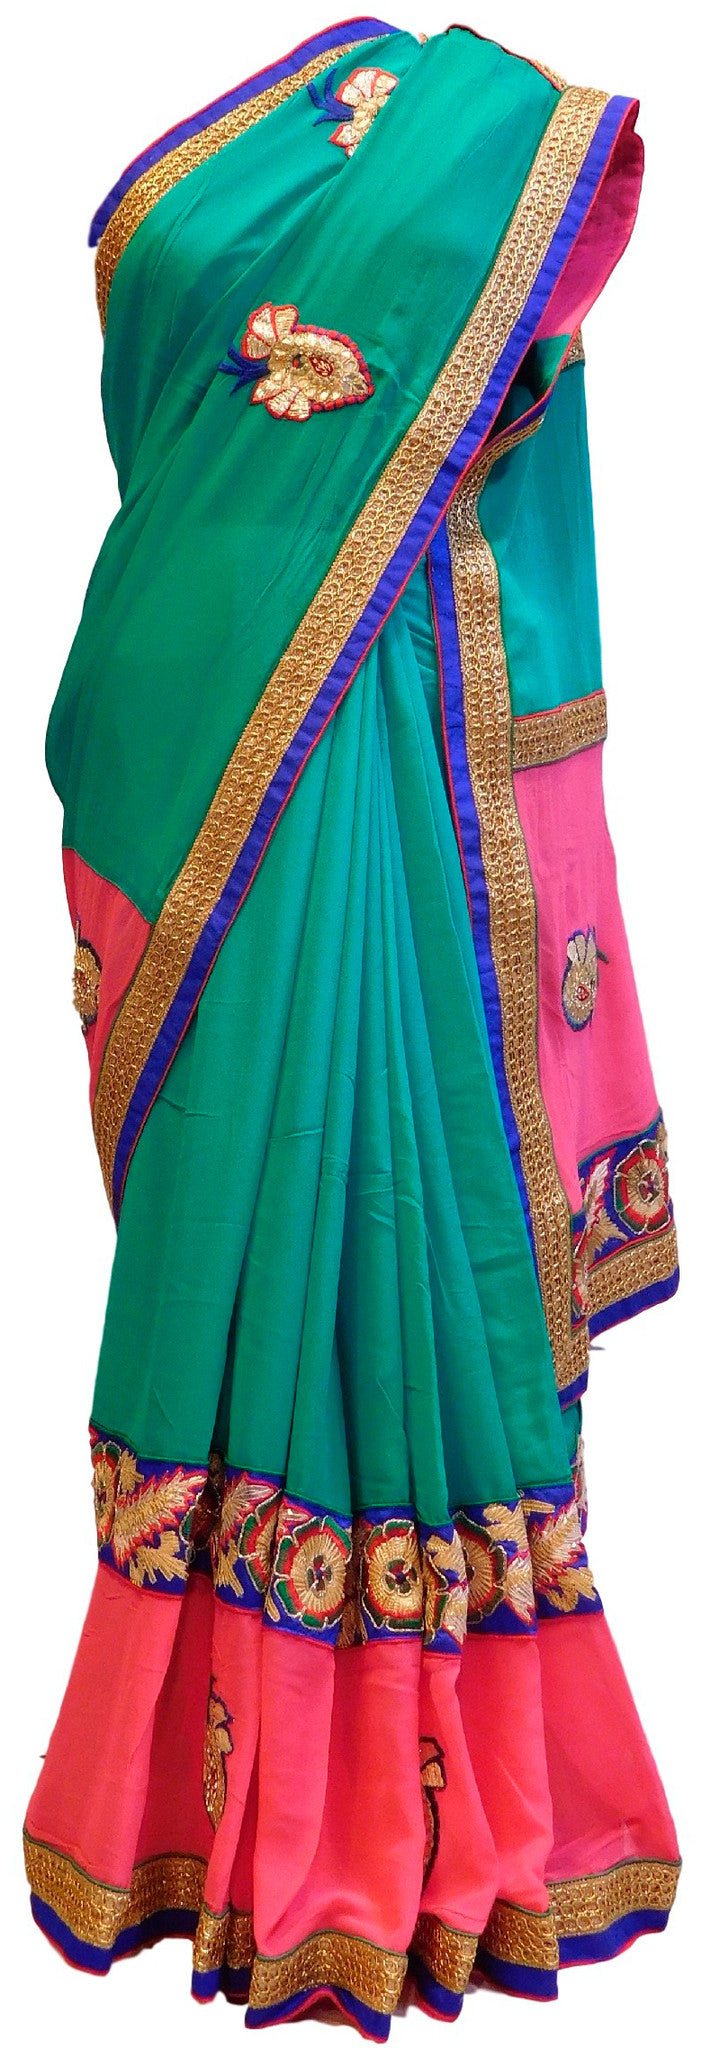 Pink & Sea Green Designer Georgette (Viscos) Hand Embroidery Thread Zari Gota Bullion Stone Saree Sari